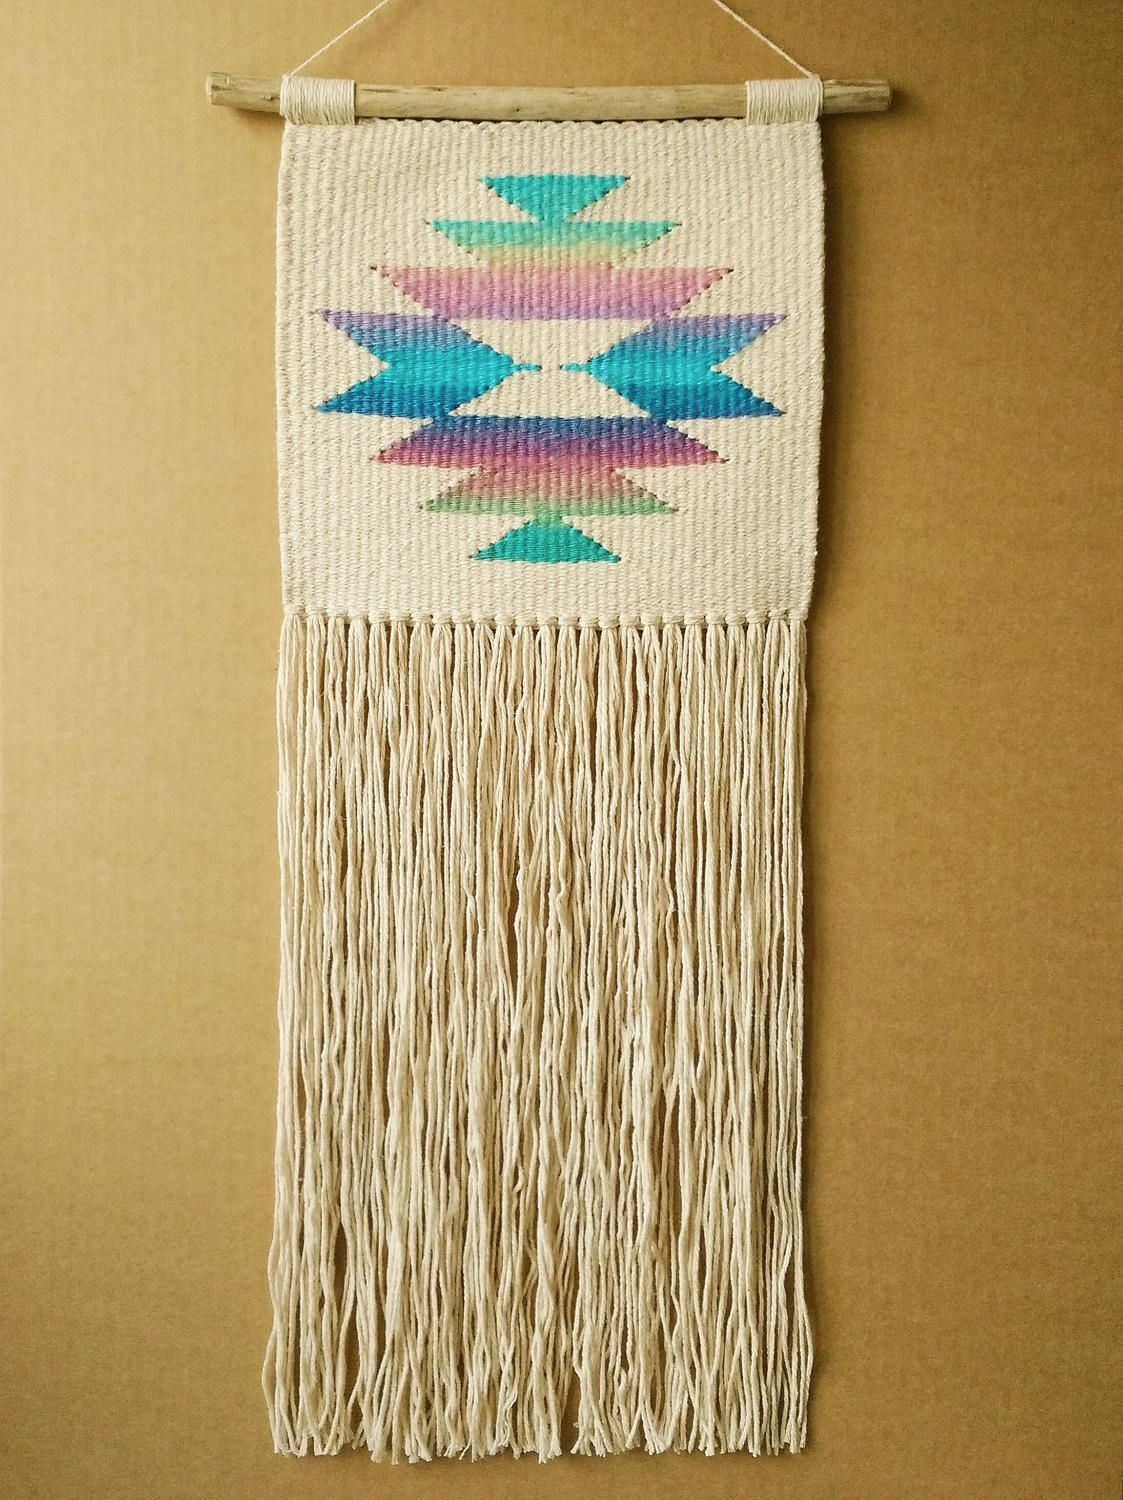 XXL Holographic Hand Woven Star Weaving and Macrame Wall Hanging ...